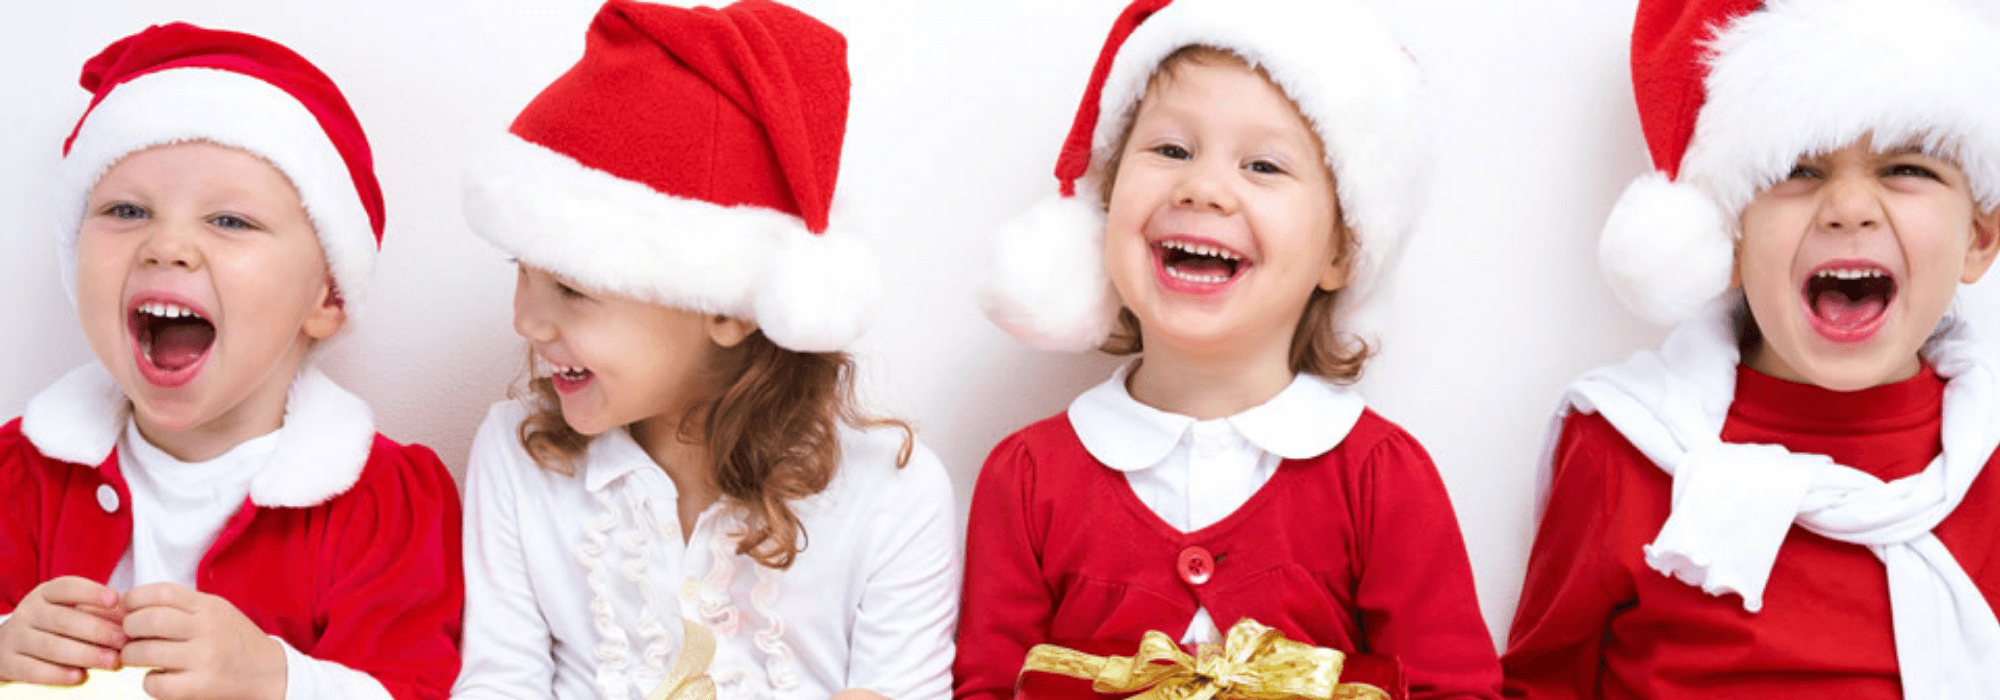 children in Christmas outfits